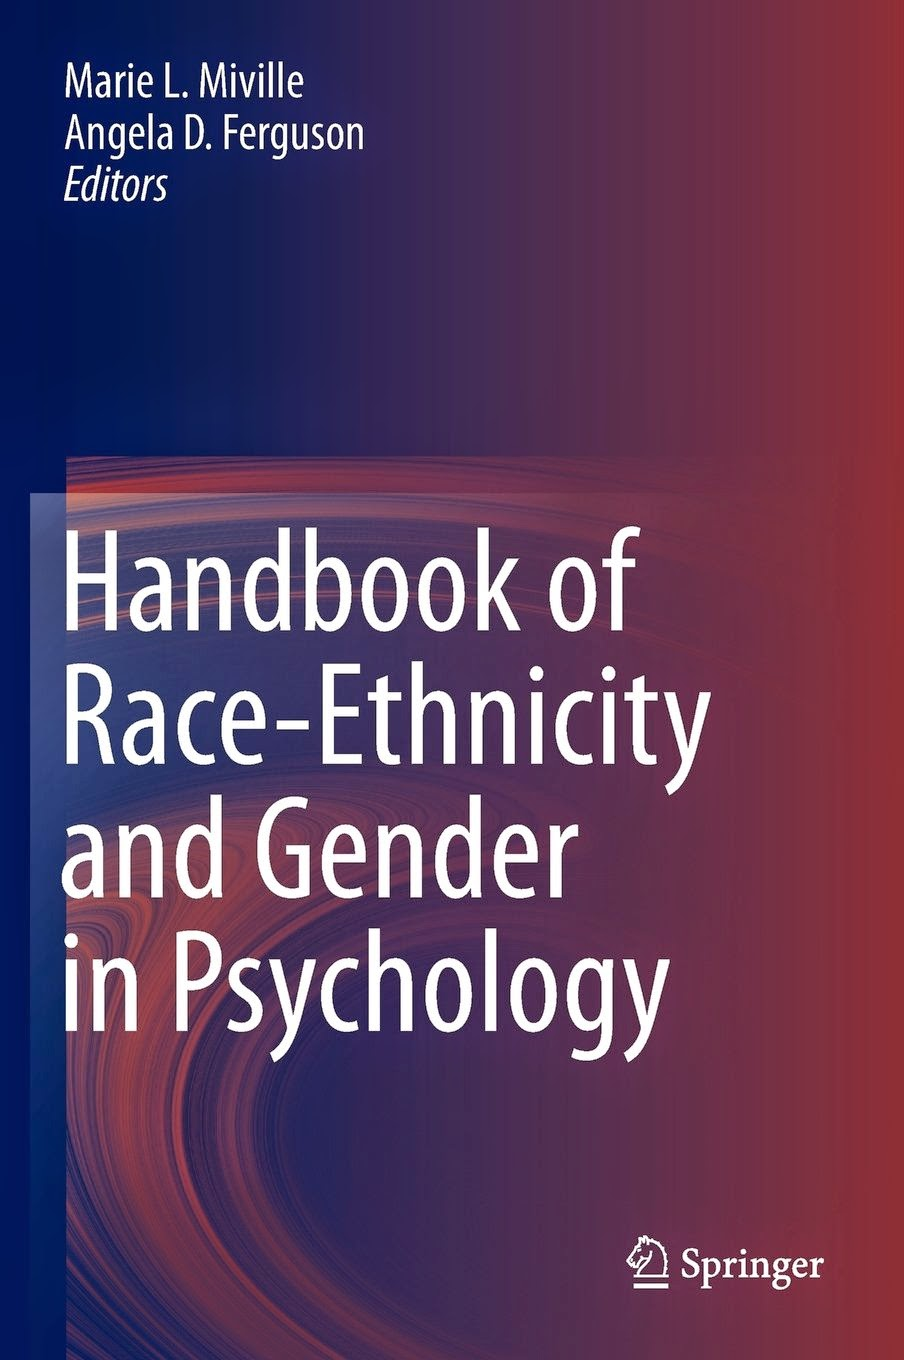 http://www.kingcheapebooks.com/2015/03/handbook-of-race-ethnicity-and-gender.html